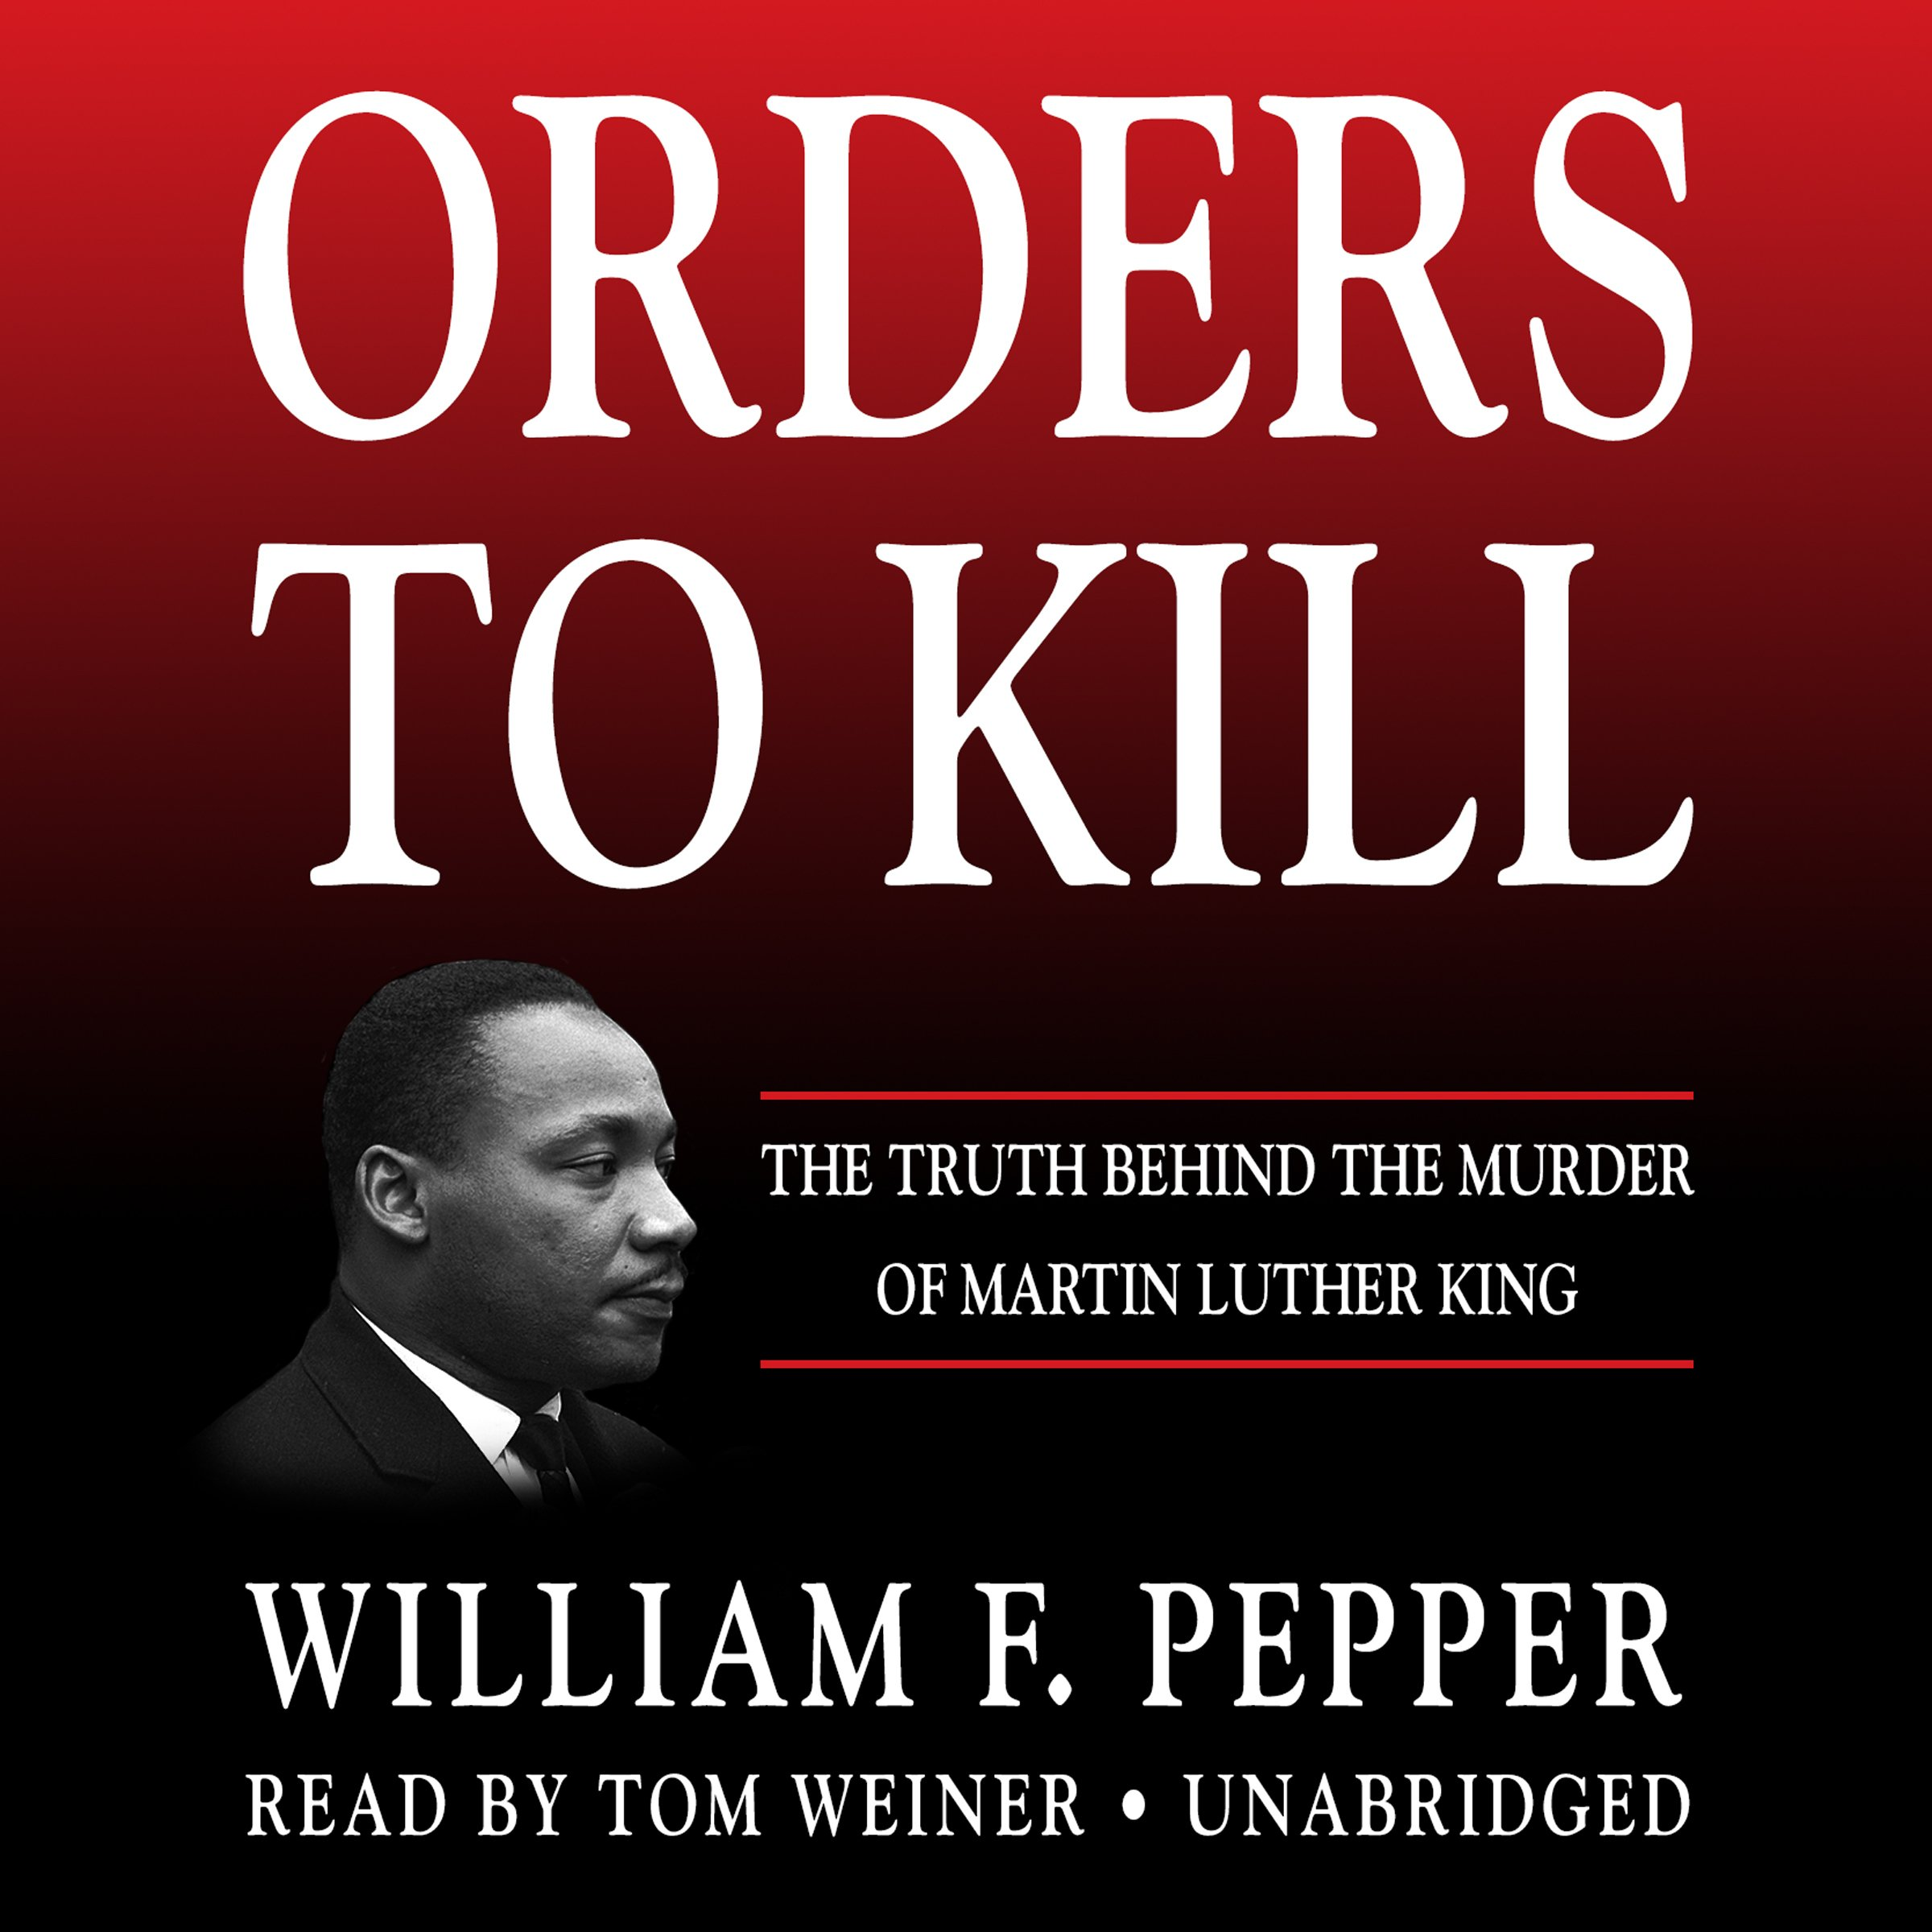 Orders to Kill: The Truth Behind the Murder of Martin Luther King: William F. Pepper: 9781483047416: Amazon.com: Books